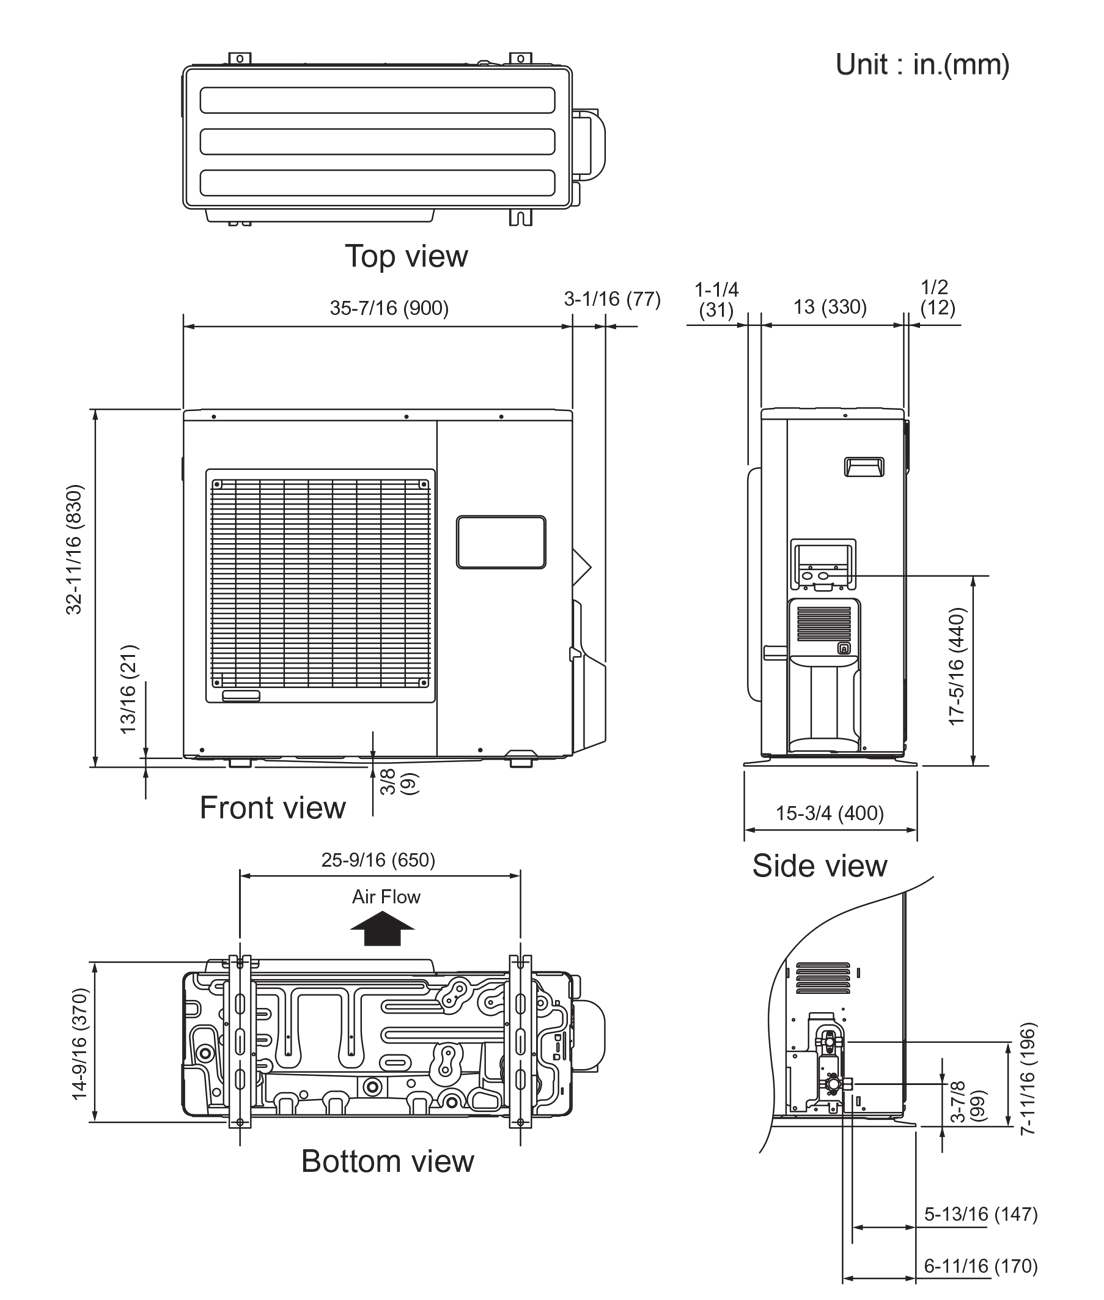 Wiring Diagram Fujitsu 36rlxb Residential Electrical Symbols Entry Level Wall Mounted Halcyon Single Room Mini Split Rh Fujitsugeneral Com Stereo Speaker